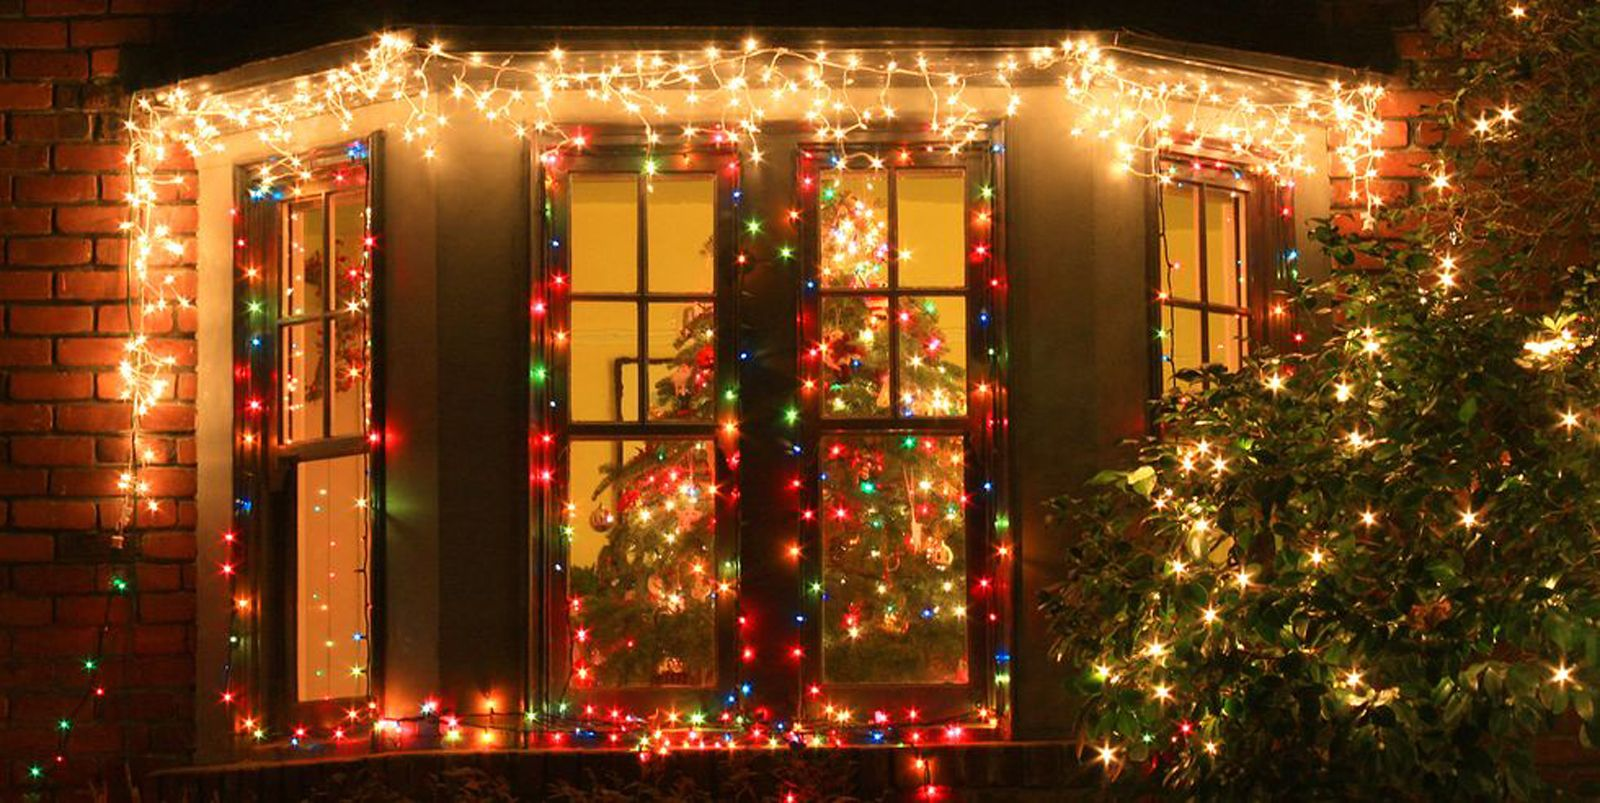 29 Christmas Window Decor Ideas 29 - Holiday Window Decorations